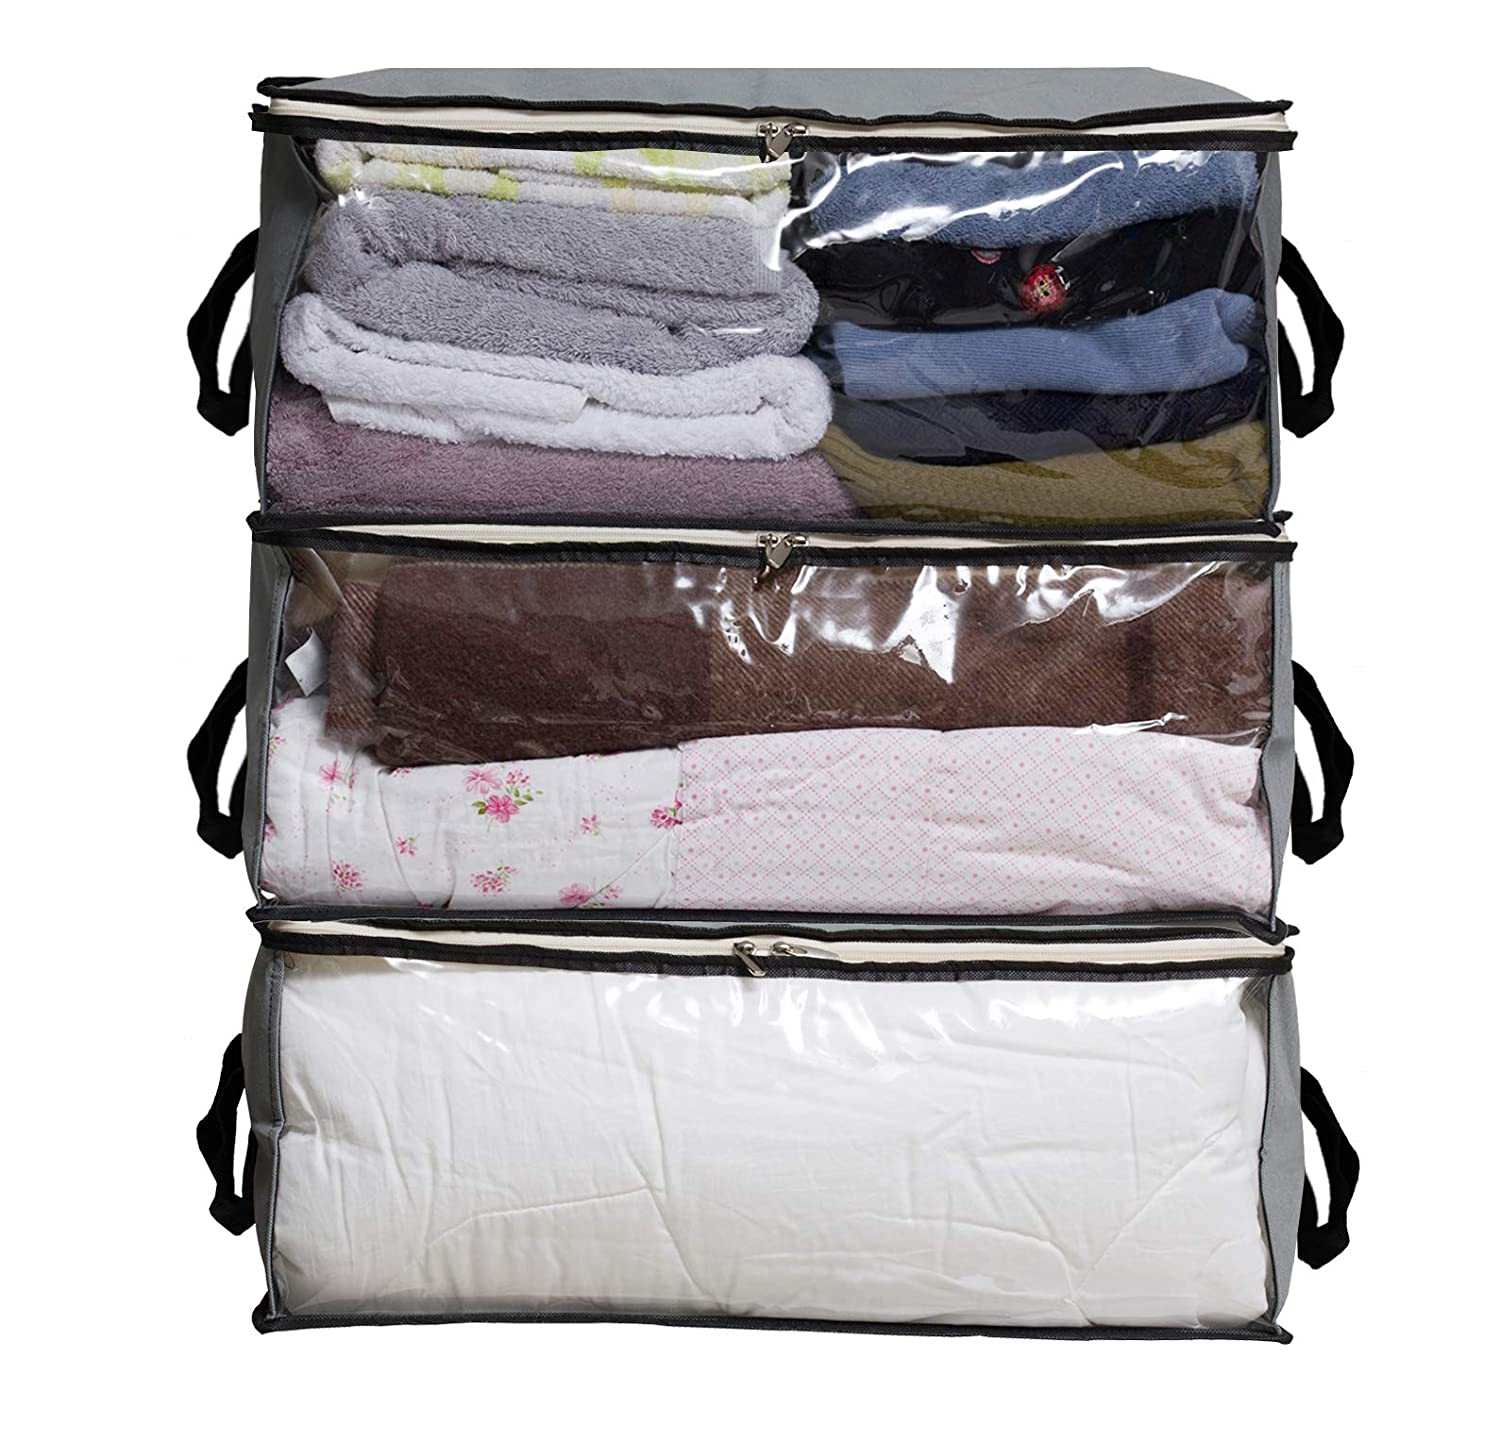 SLEEPING LAMB Storage Bag Organizers Pillows Clothing Storage Containers for Clothes Closet Sweater 3 Piece Set Bedding in Bedroom Grey Blanket